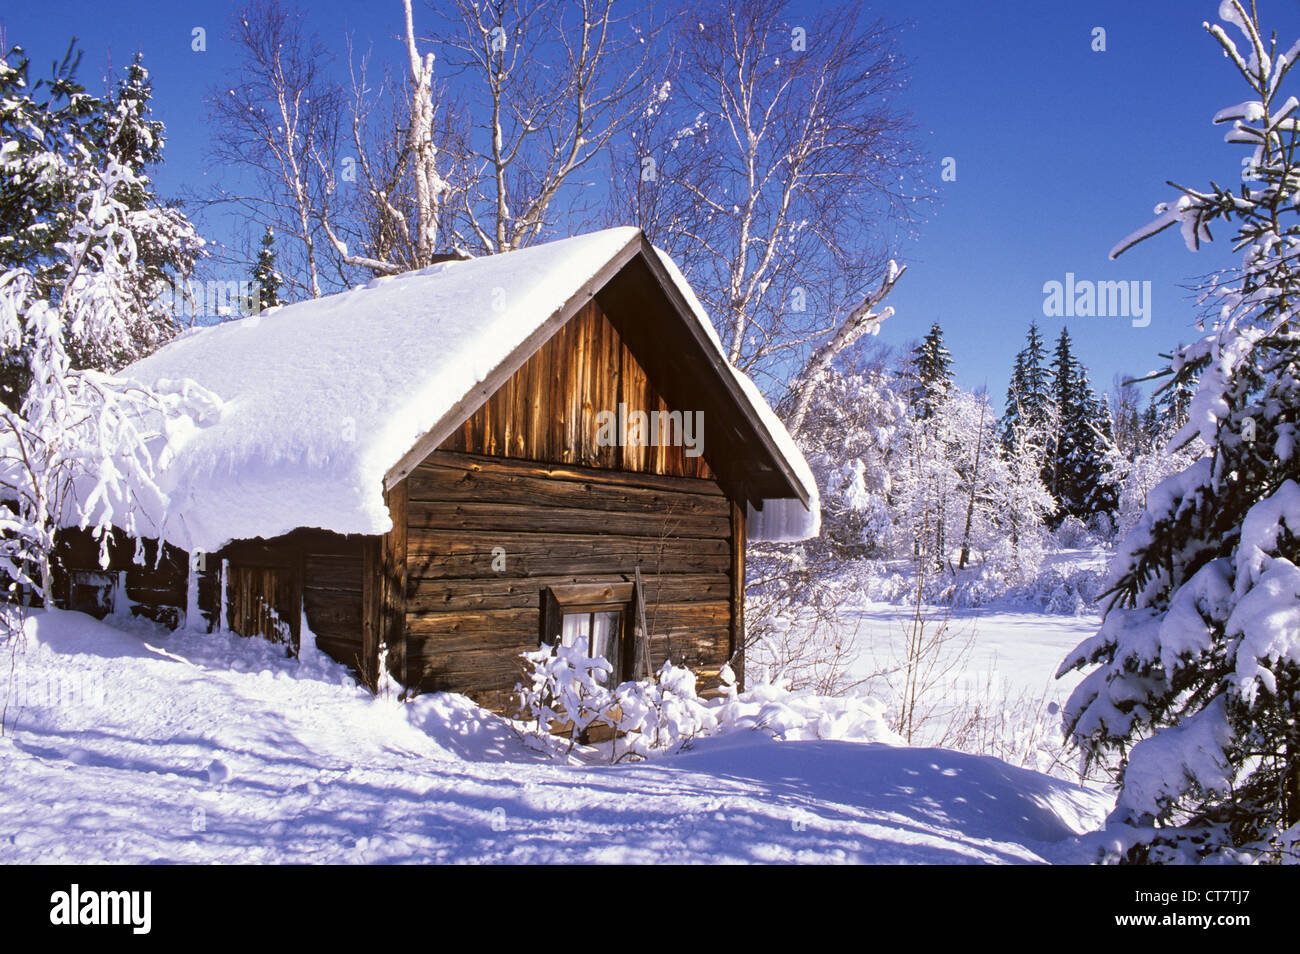 eine alte finnische log sauna im winter sudbury ontario kanada stockfoto bild 49345471 alamy. Black Bedroom Furniture Sets. Home Design Ideas